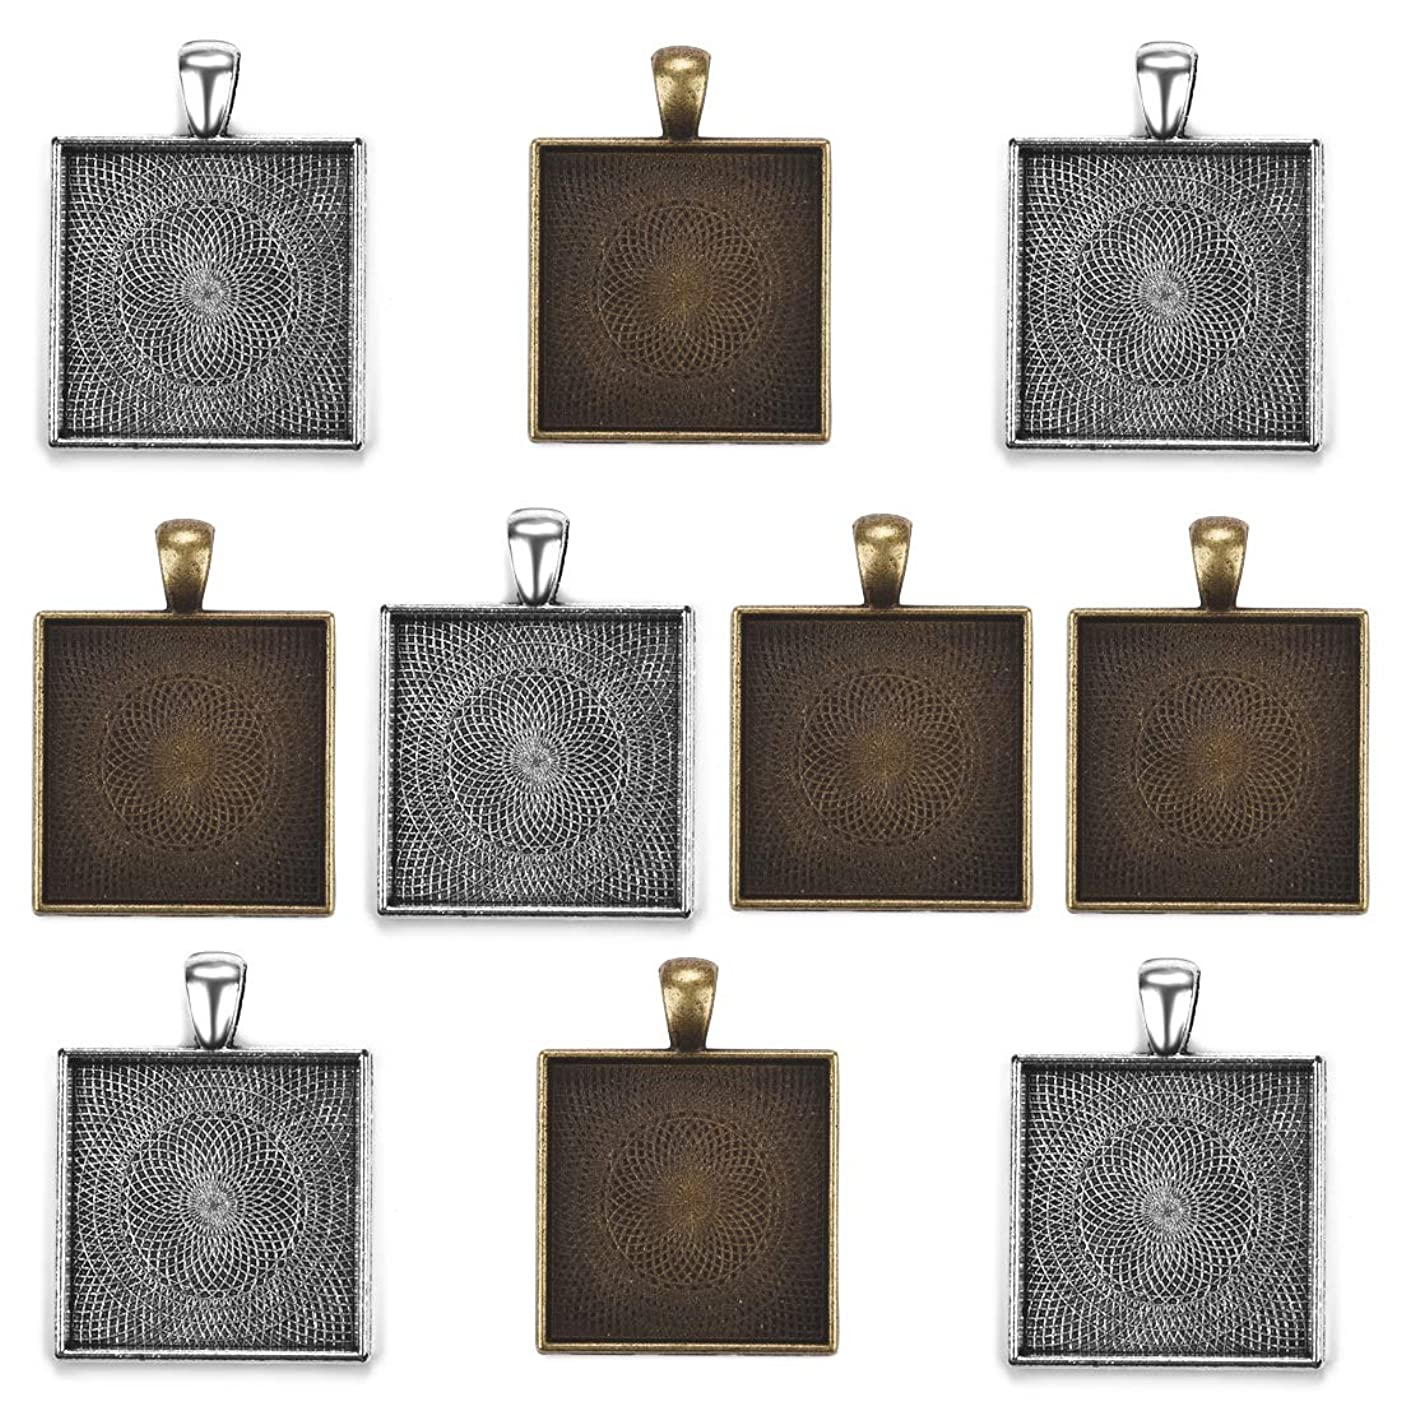 10Pcs Pendant Trays Square Bezel for Jewelry Making Jewelry Pendant Trays Jewelry Findings Cabochon Frame Setting Tray Pendant 2 Colors 25mm